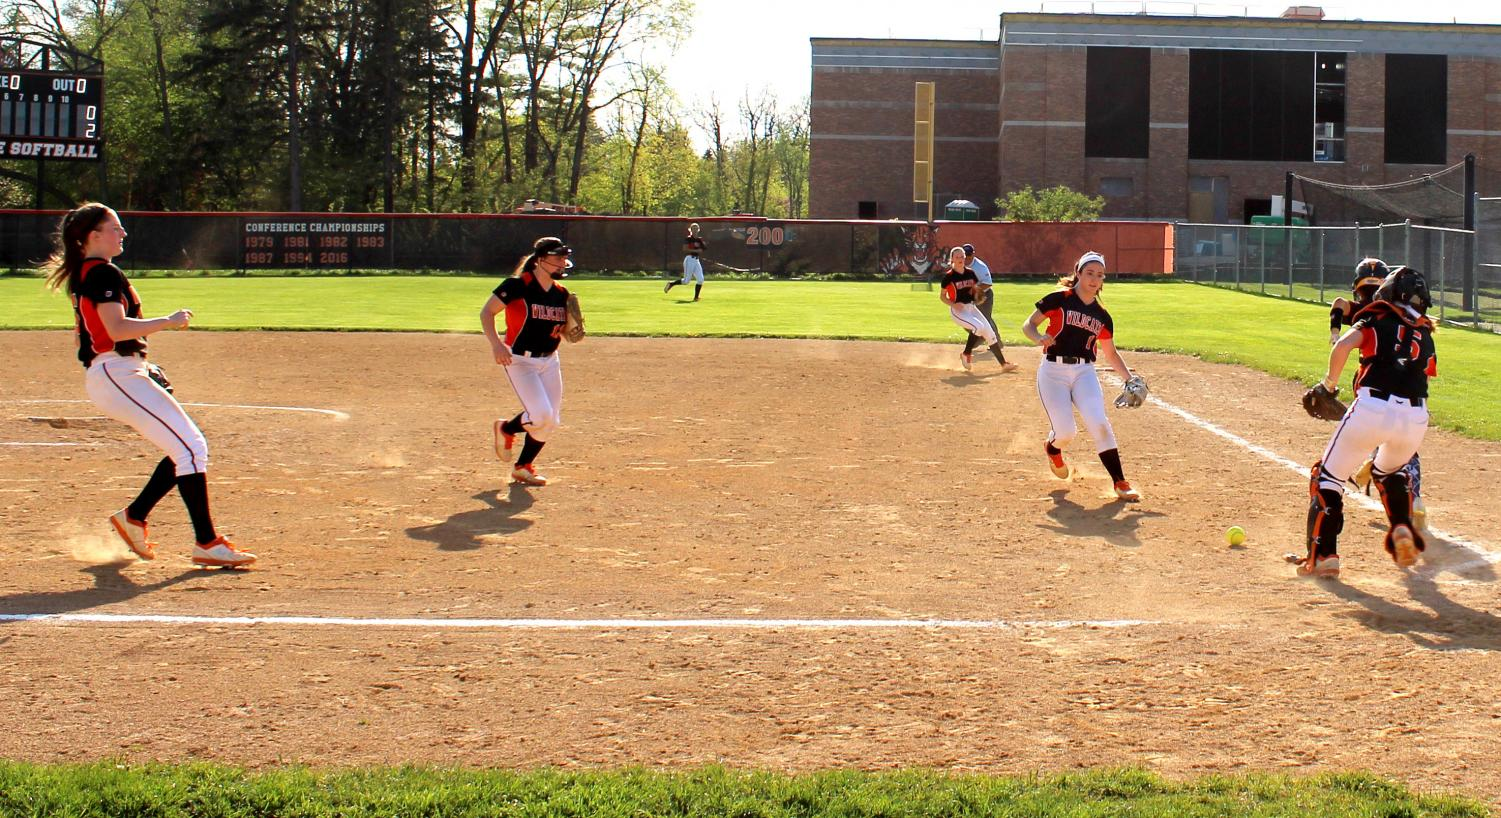 The+Cats+work+together+and+communicate+after+a+bunt+by+Zion-Benton%3B+Libertyville+recorded+the+out.